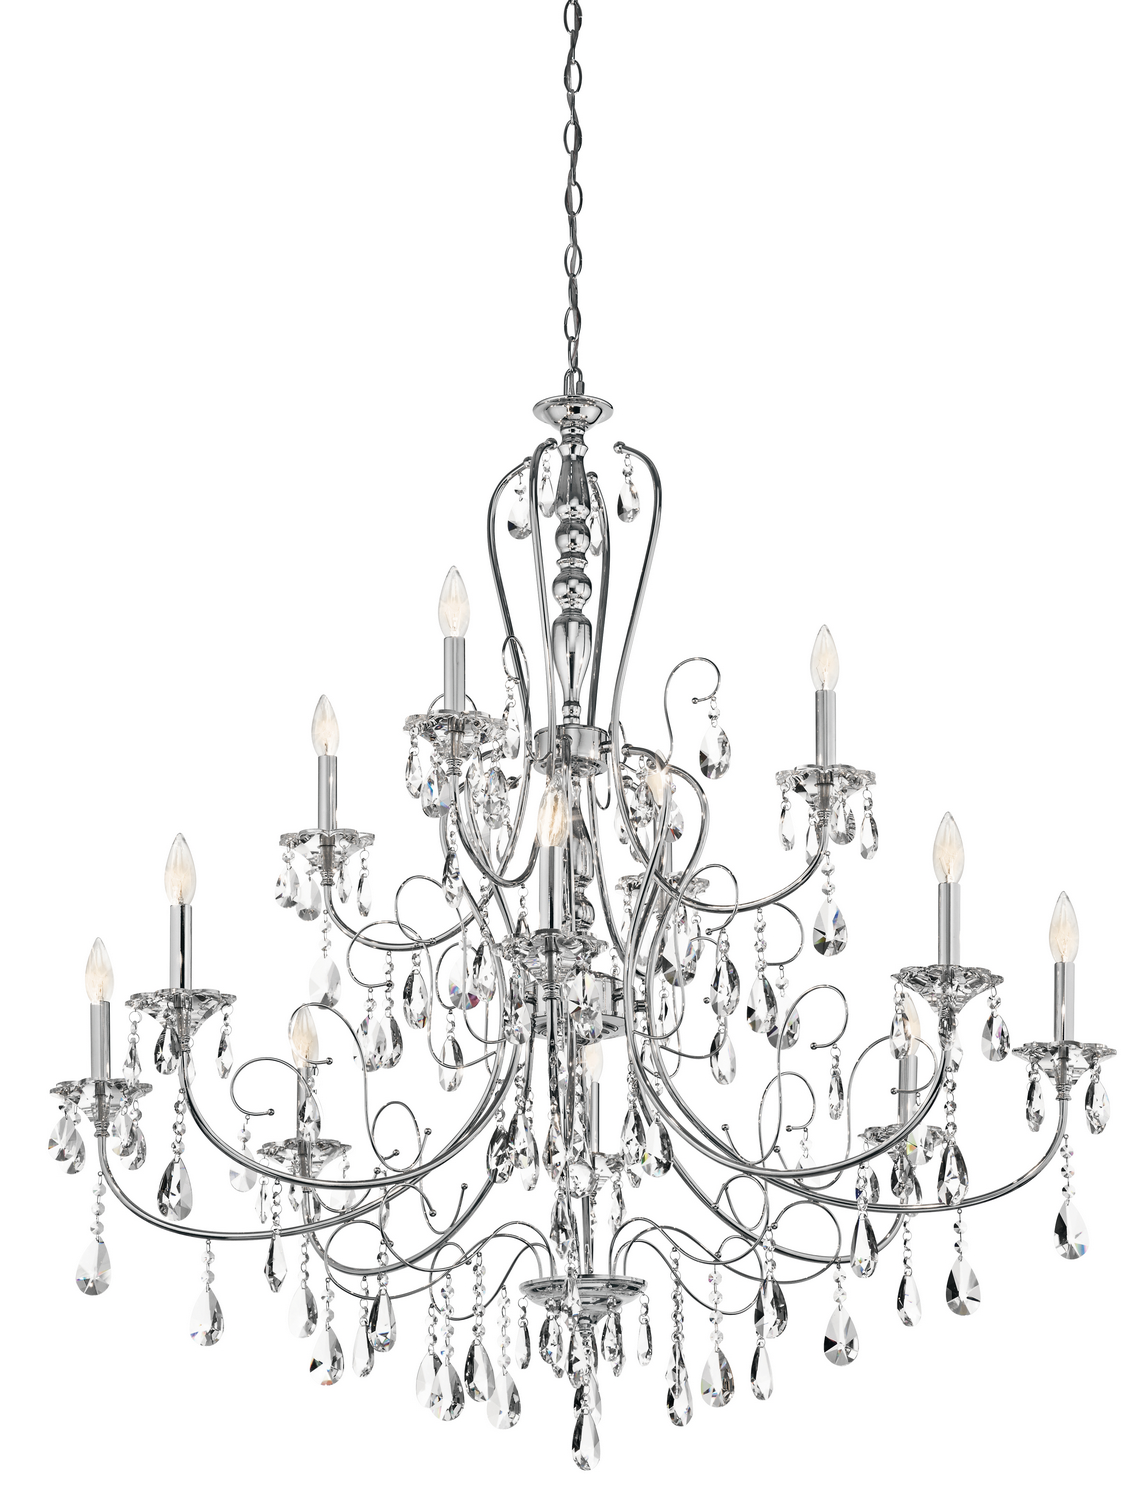 12 Light Chandelier from the Jules collection by Kichler 43124CH